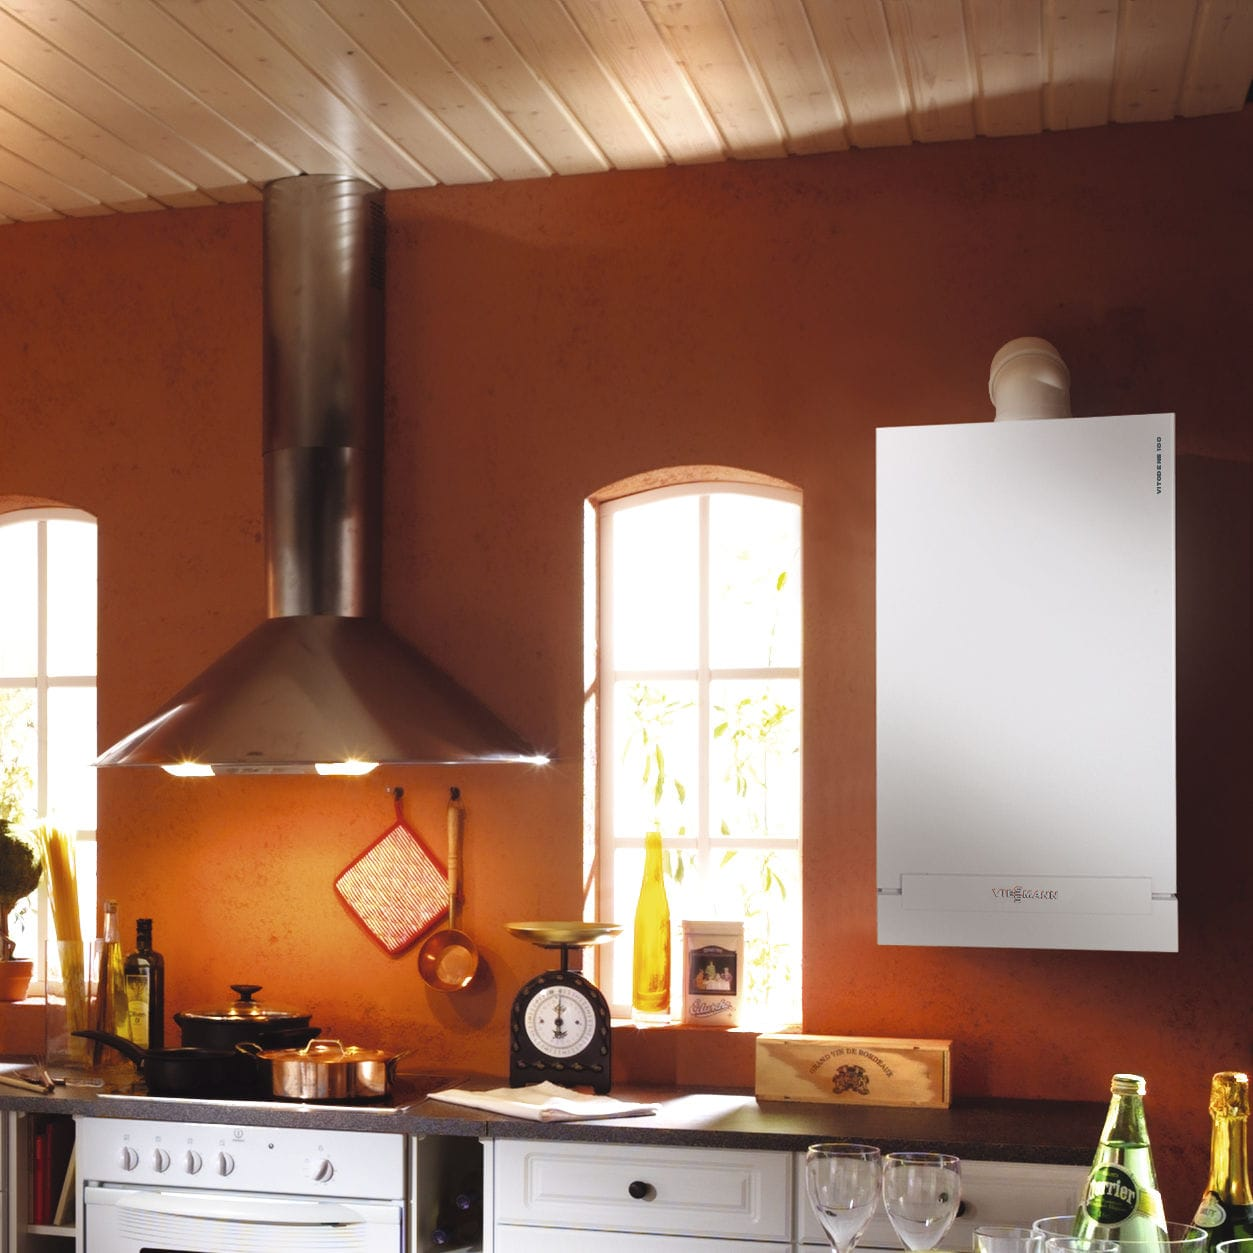 Which gas boiler is better Wall or floor?